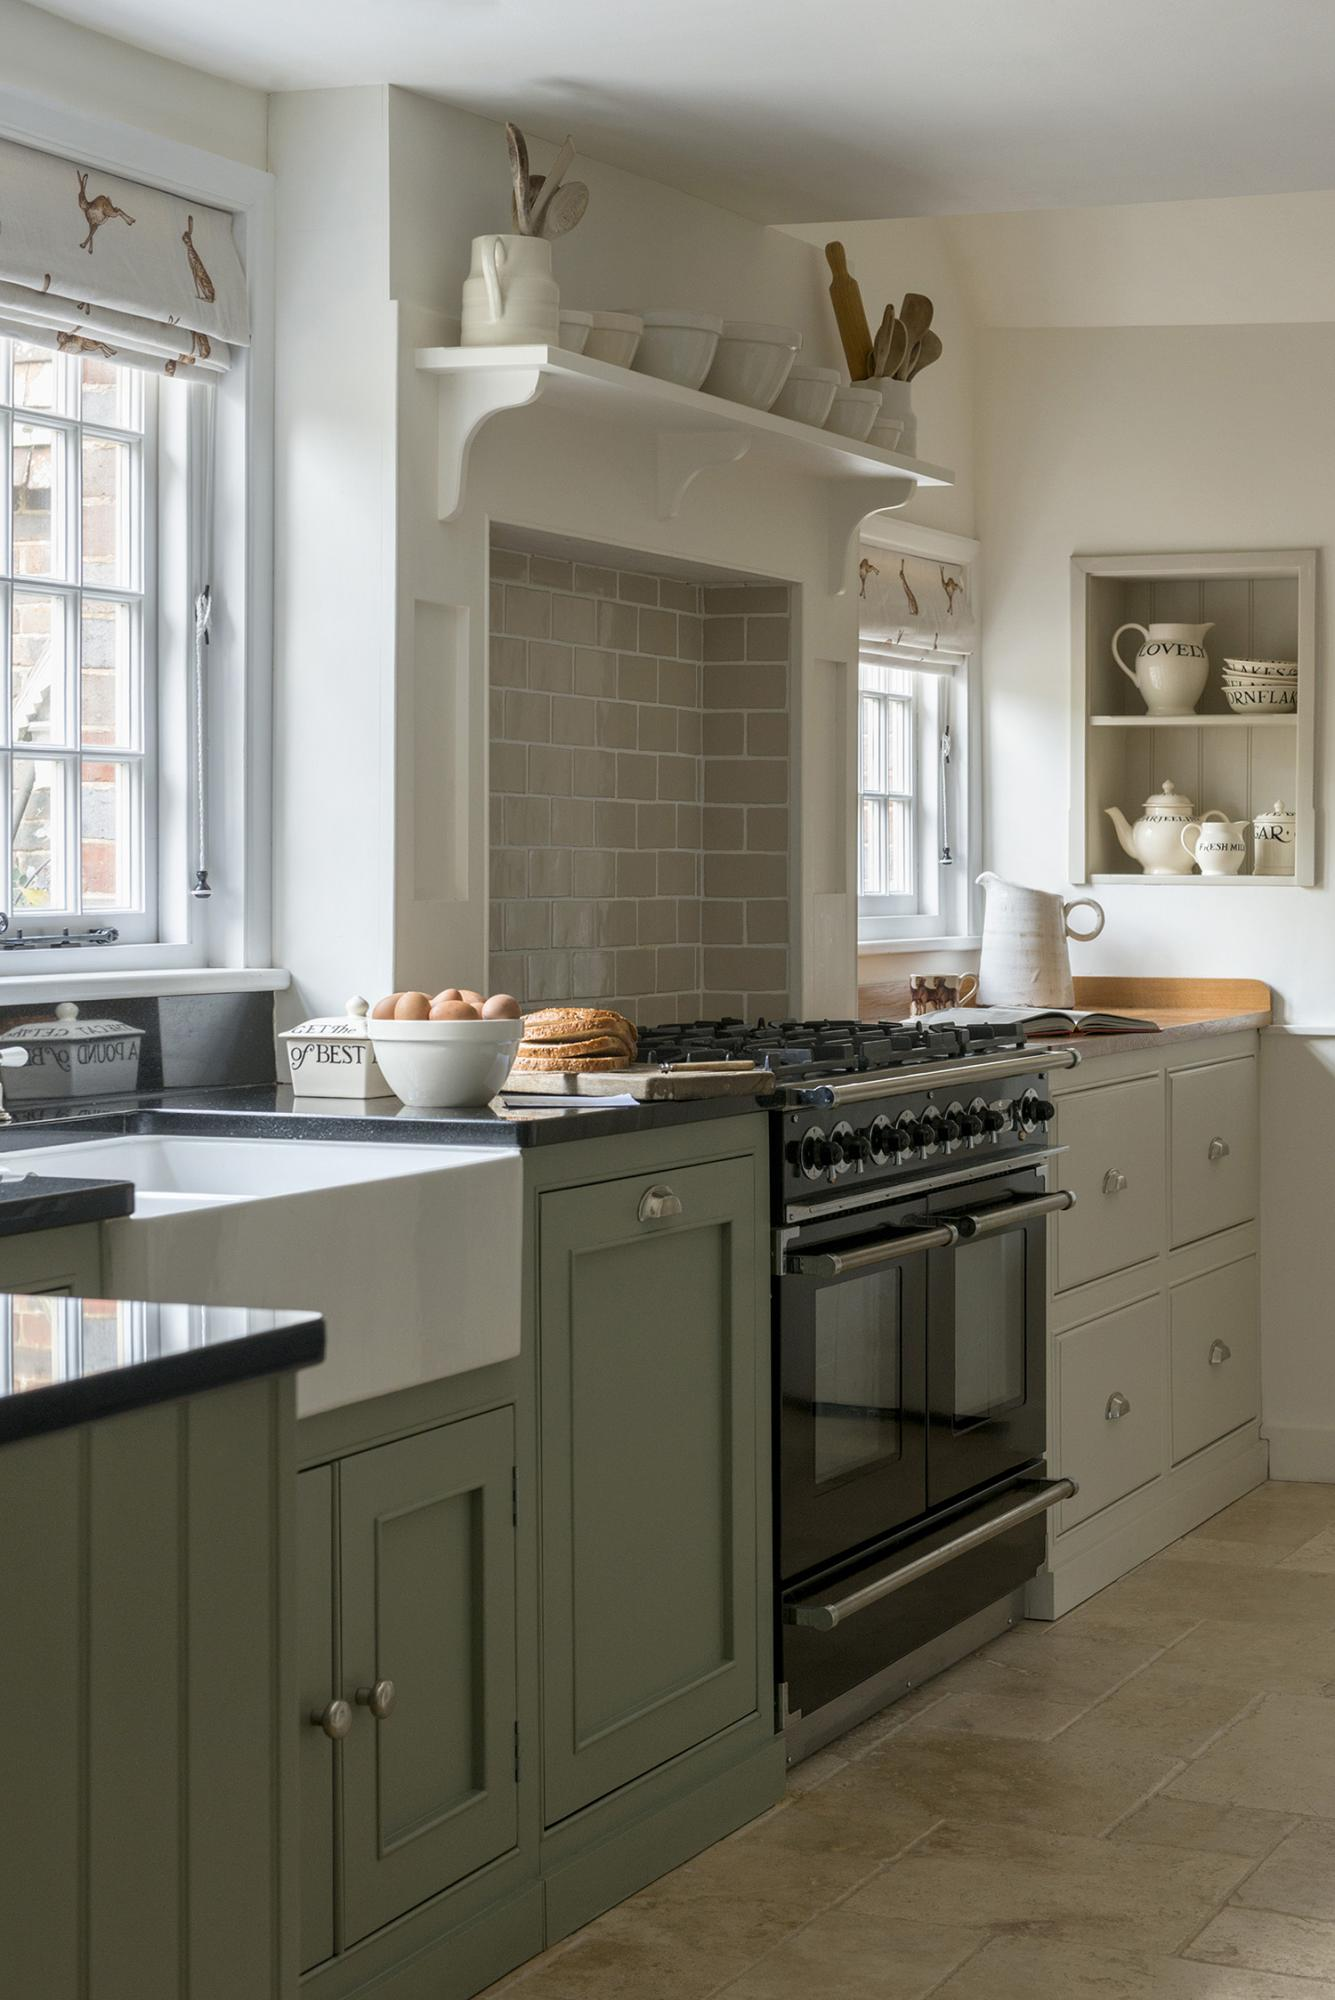 Farmhouse country kitchens design sussex surrey for Green country kitchen ideas